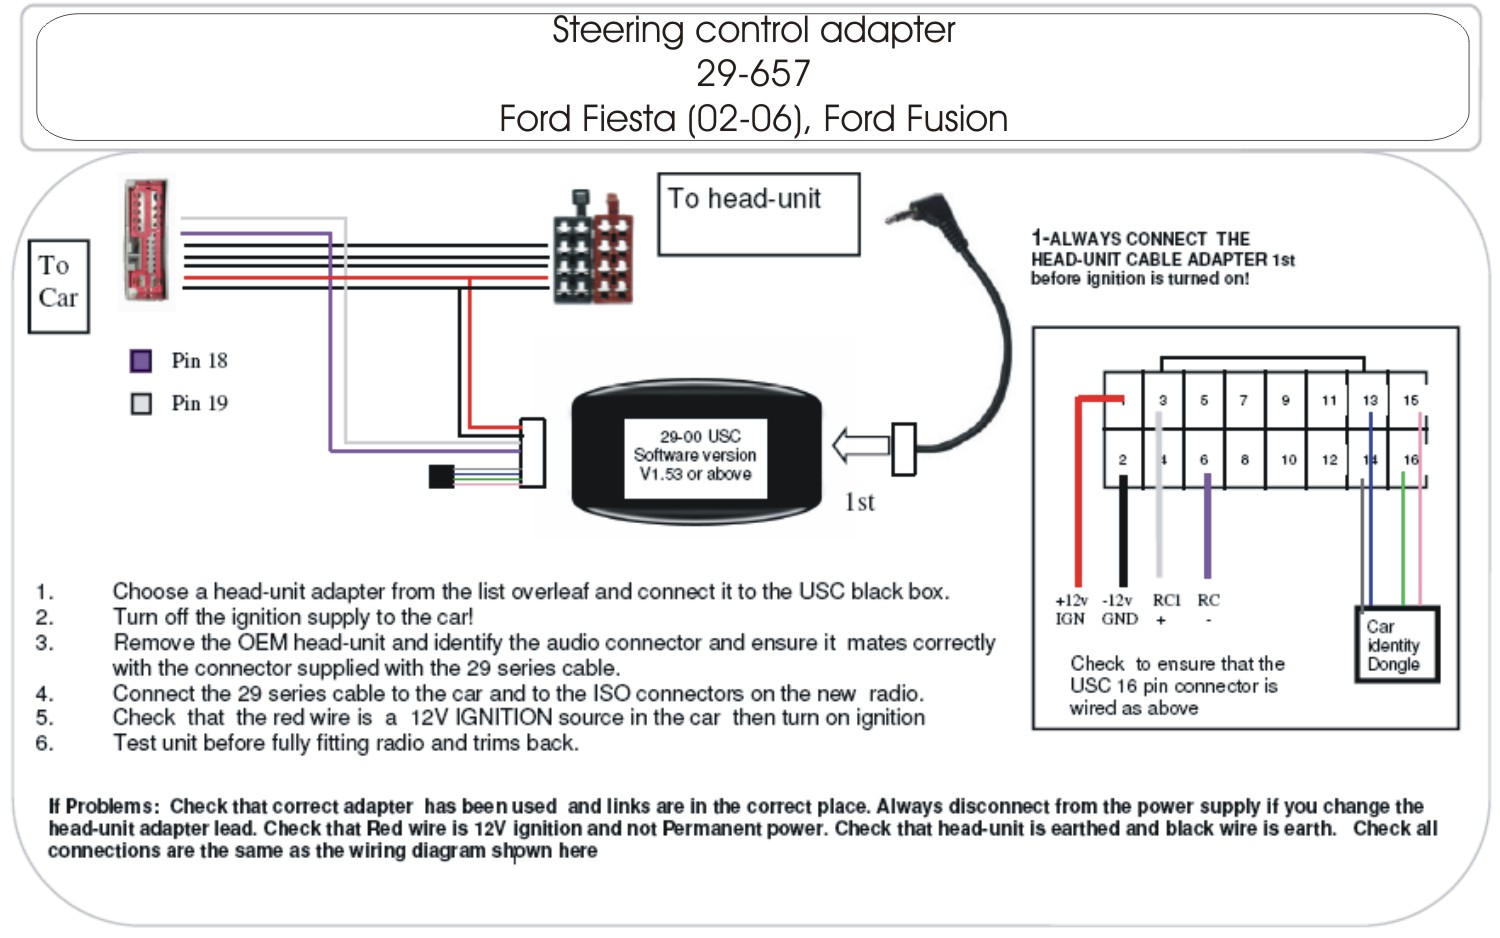 20022006 Ford Fiesta Steering Control Adapter | Schematic